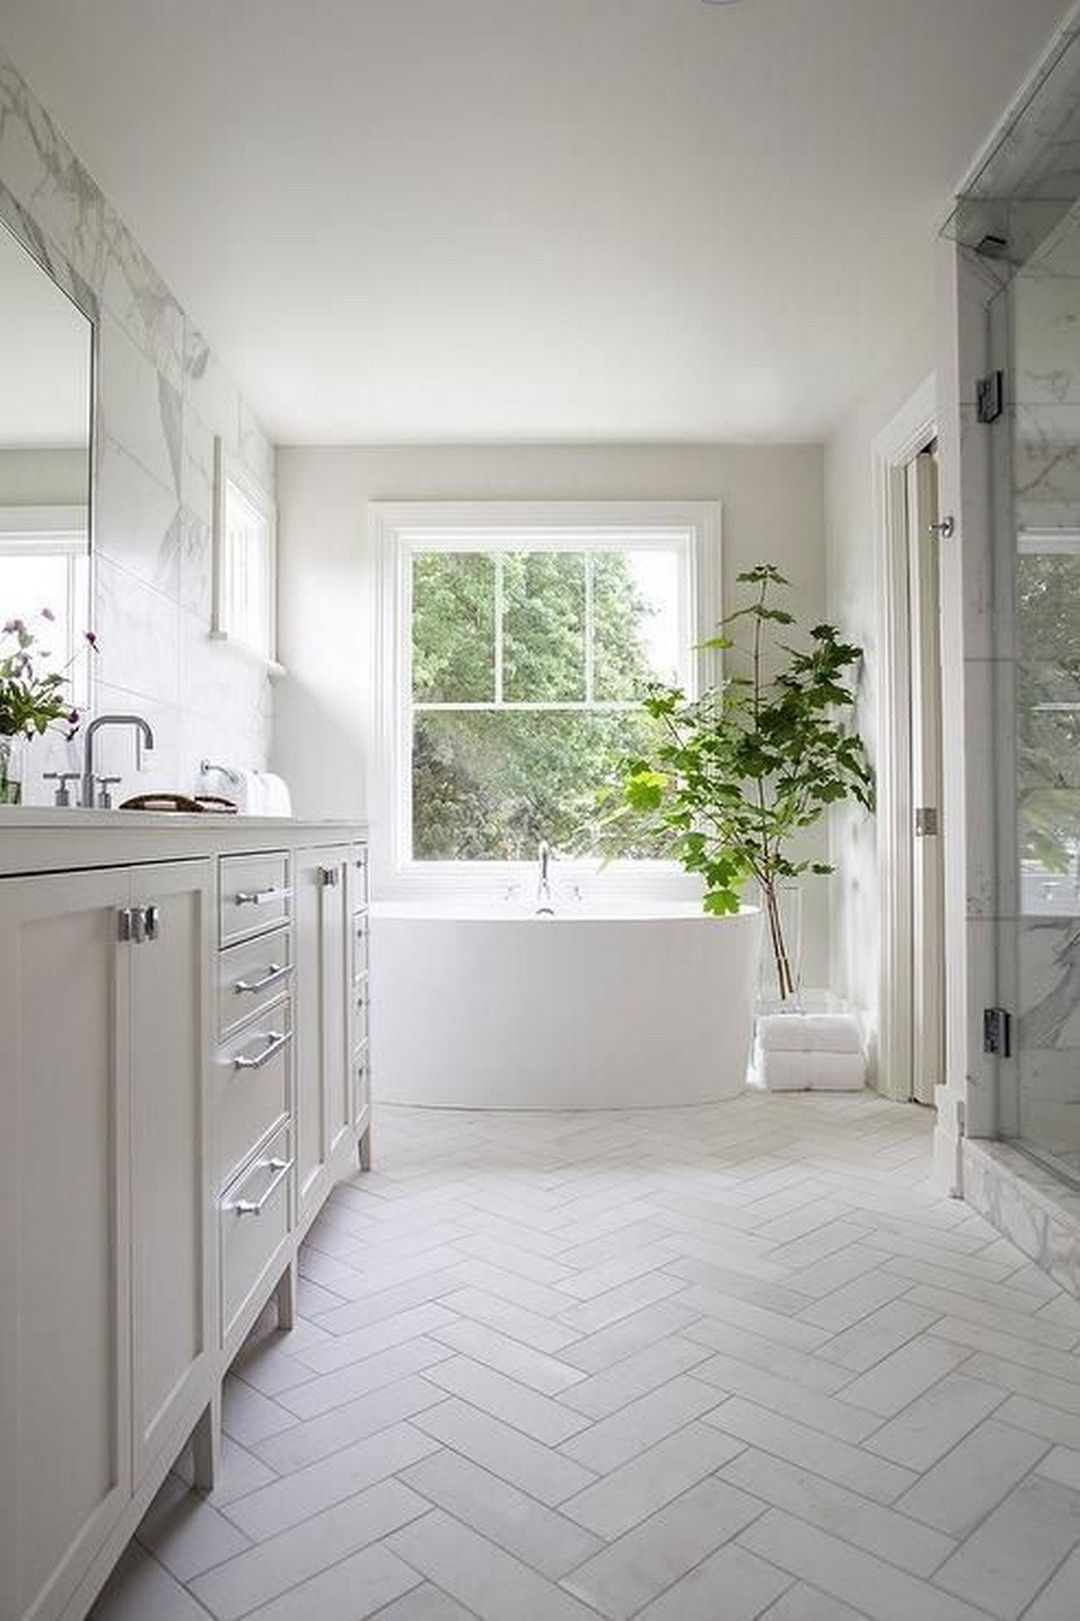 73 Beautiful White Subway Tiled Bathroom With Marble ...